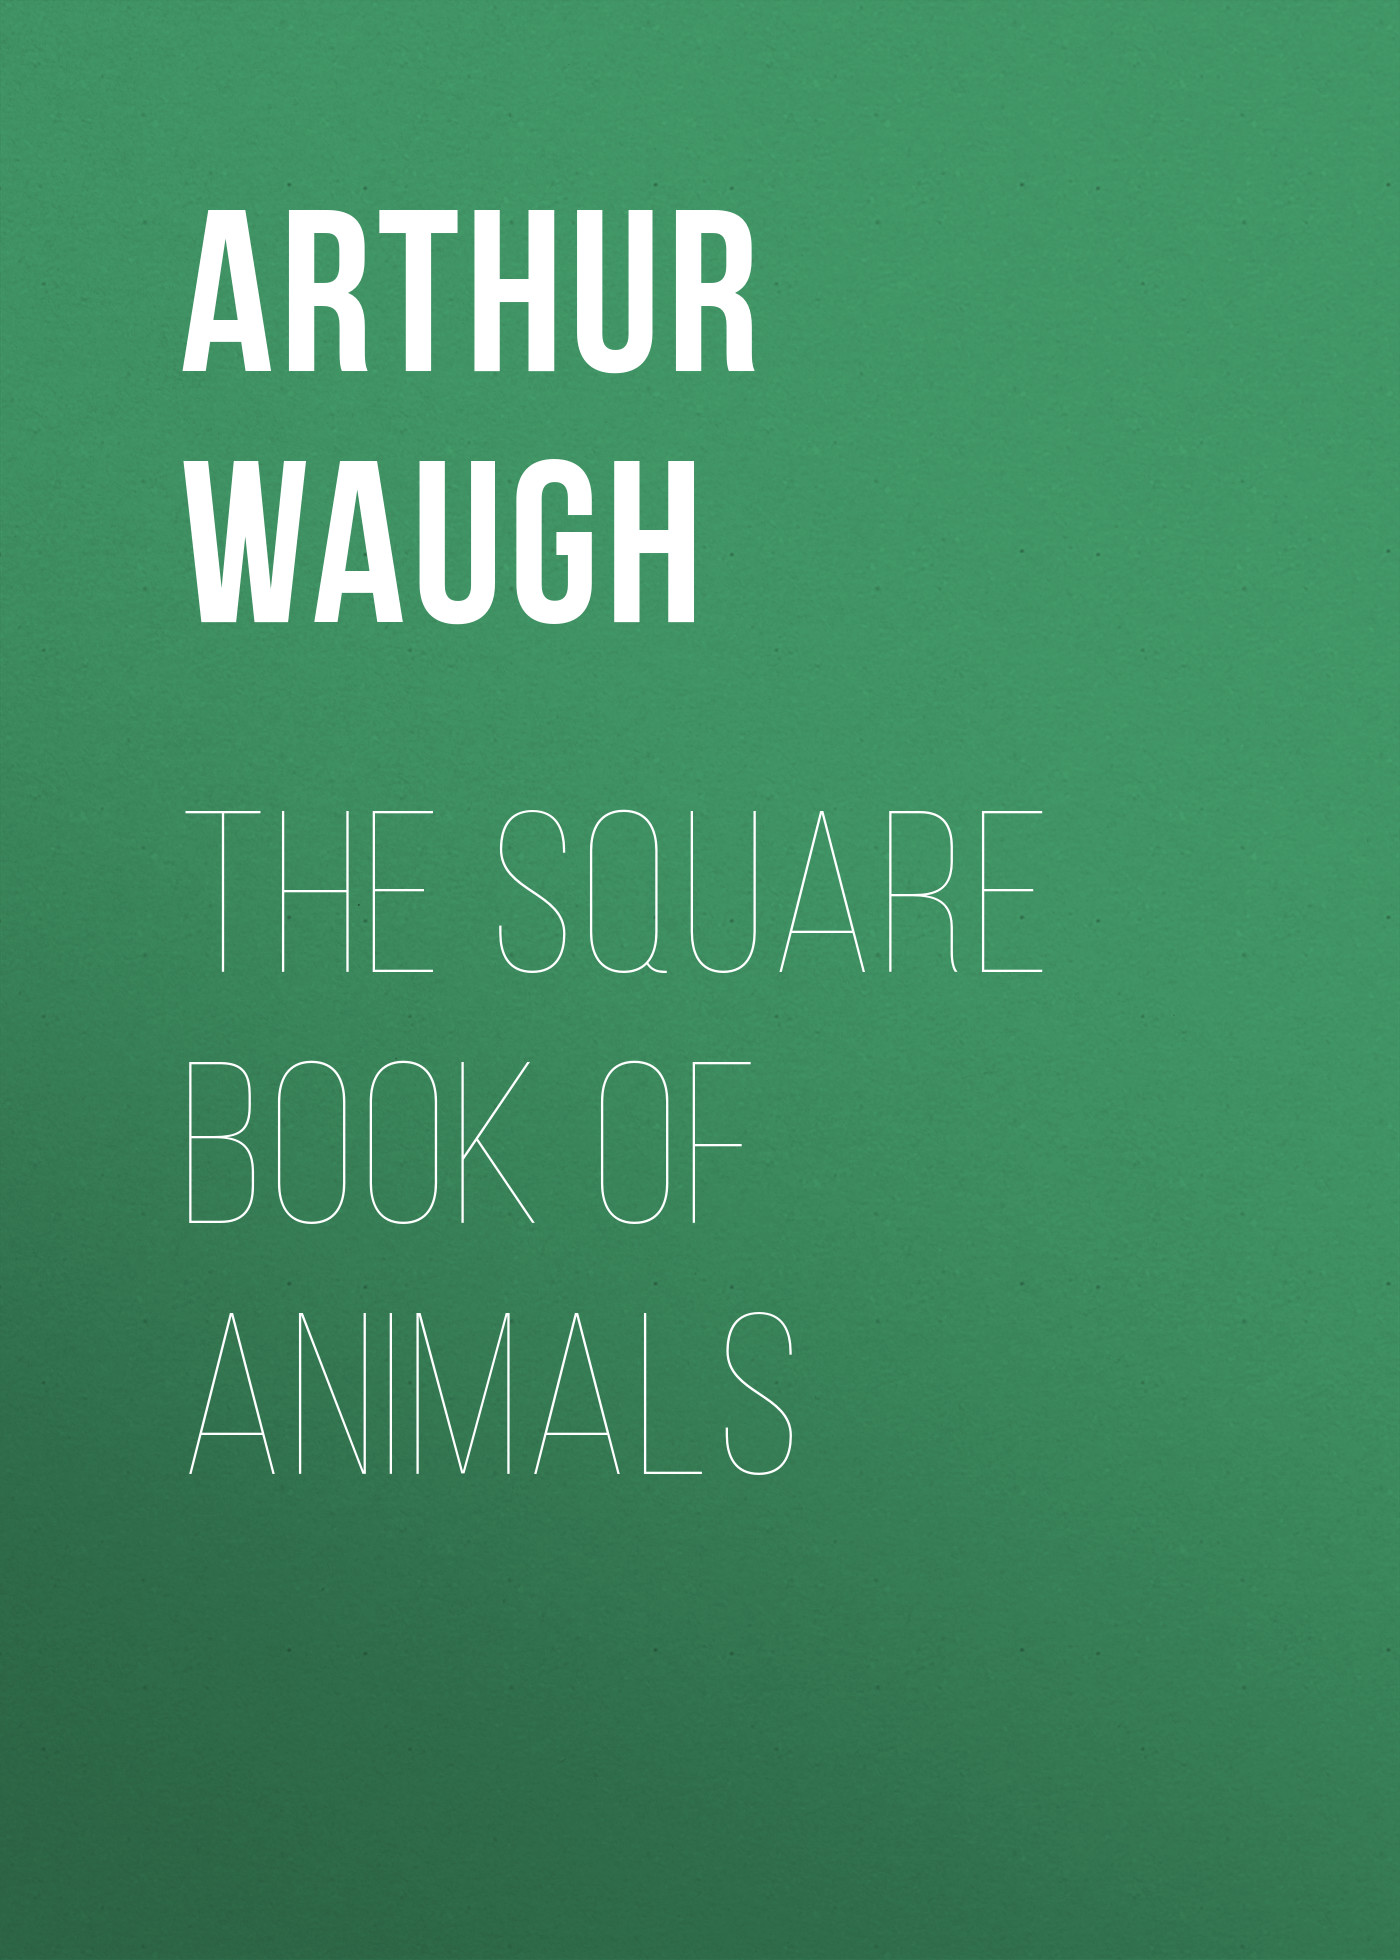 Arthur Waugh The Square Book of Animals купить в Москве 2019